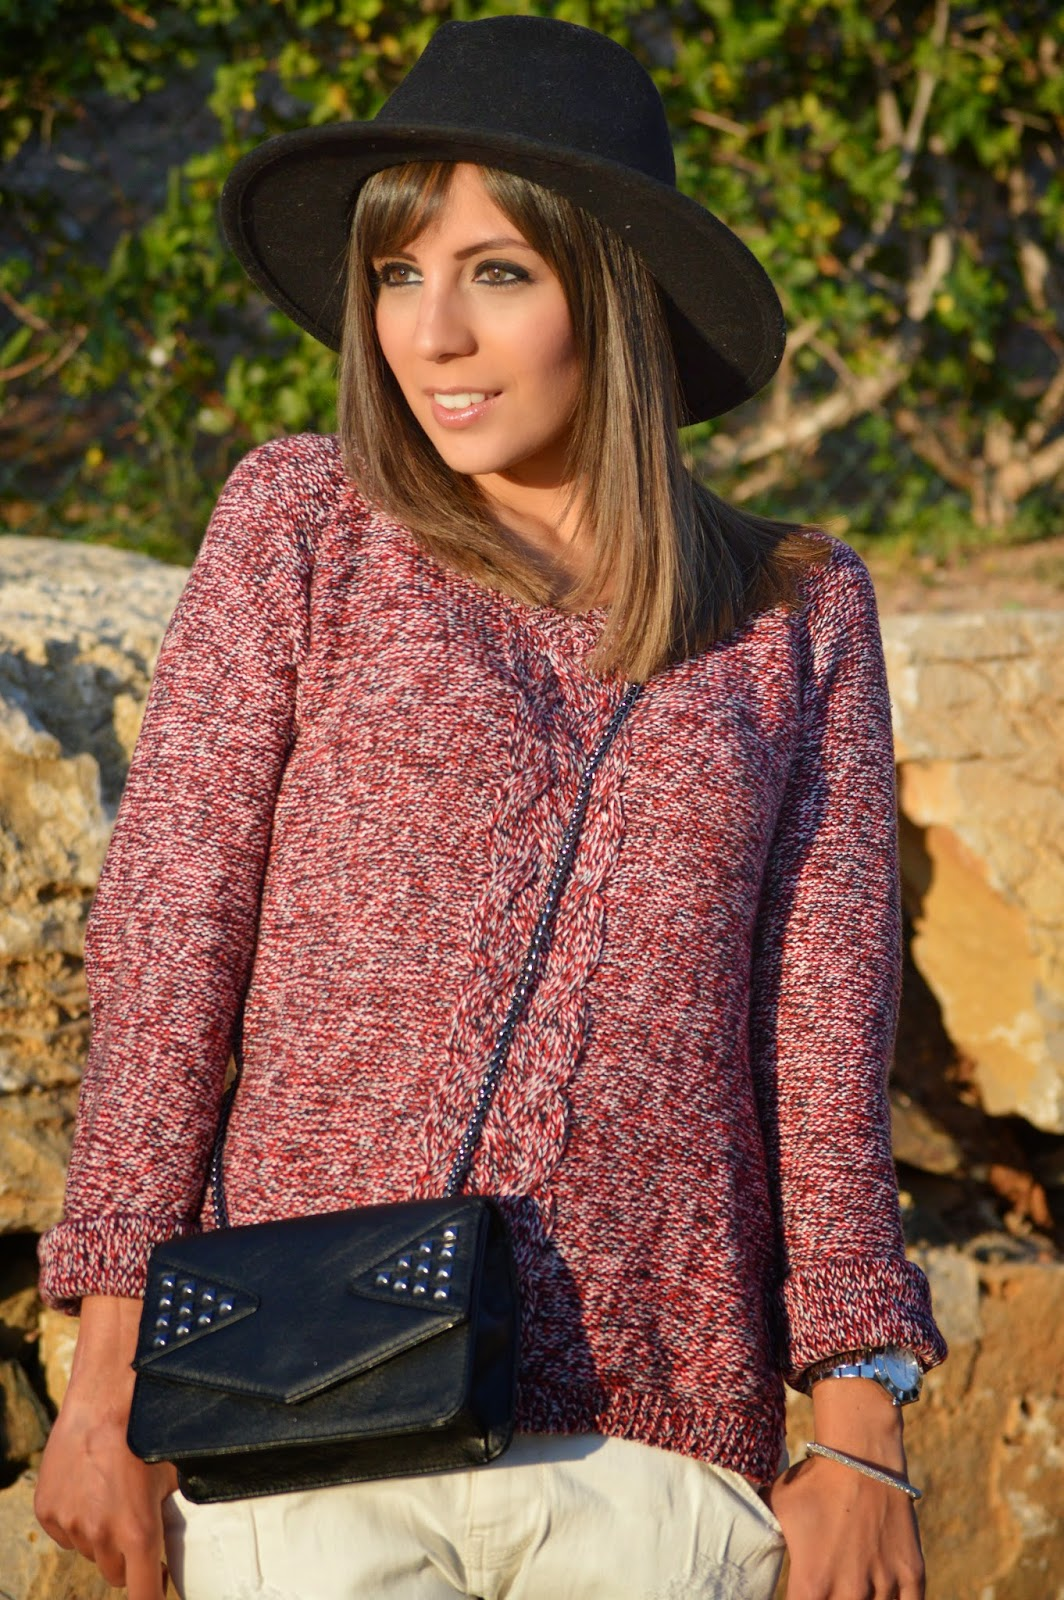 street style fashion cristina style fashion blogger malagueña blogger malagueña inspiration outfit look chic lovely casual inspirations mango zara blog moda mood